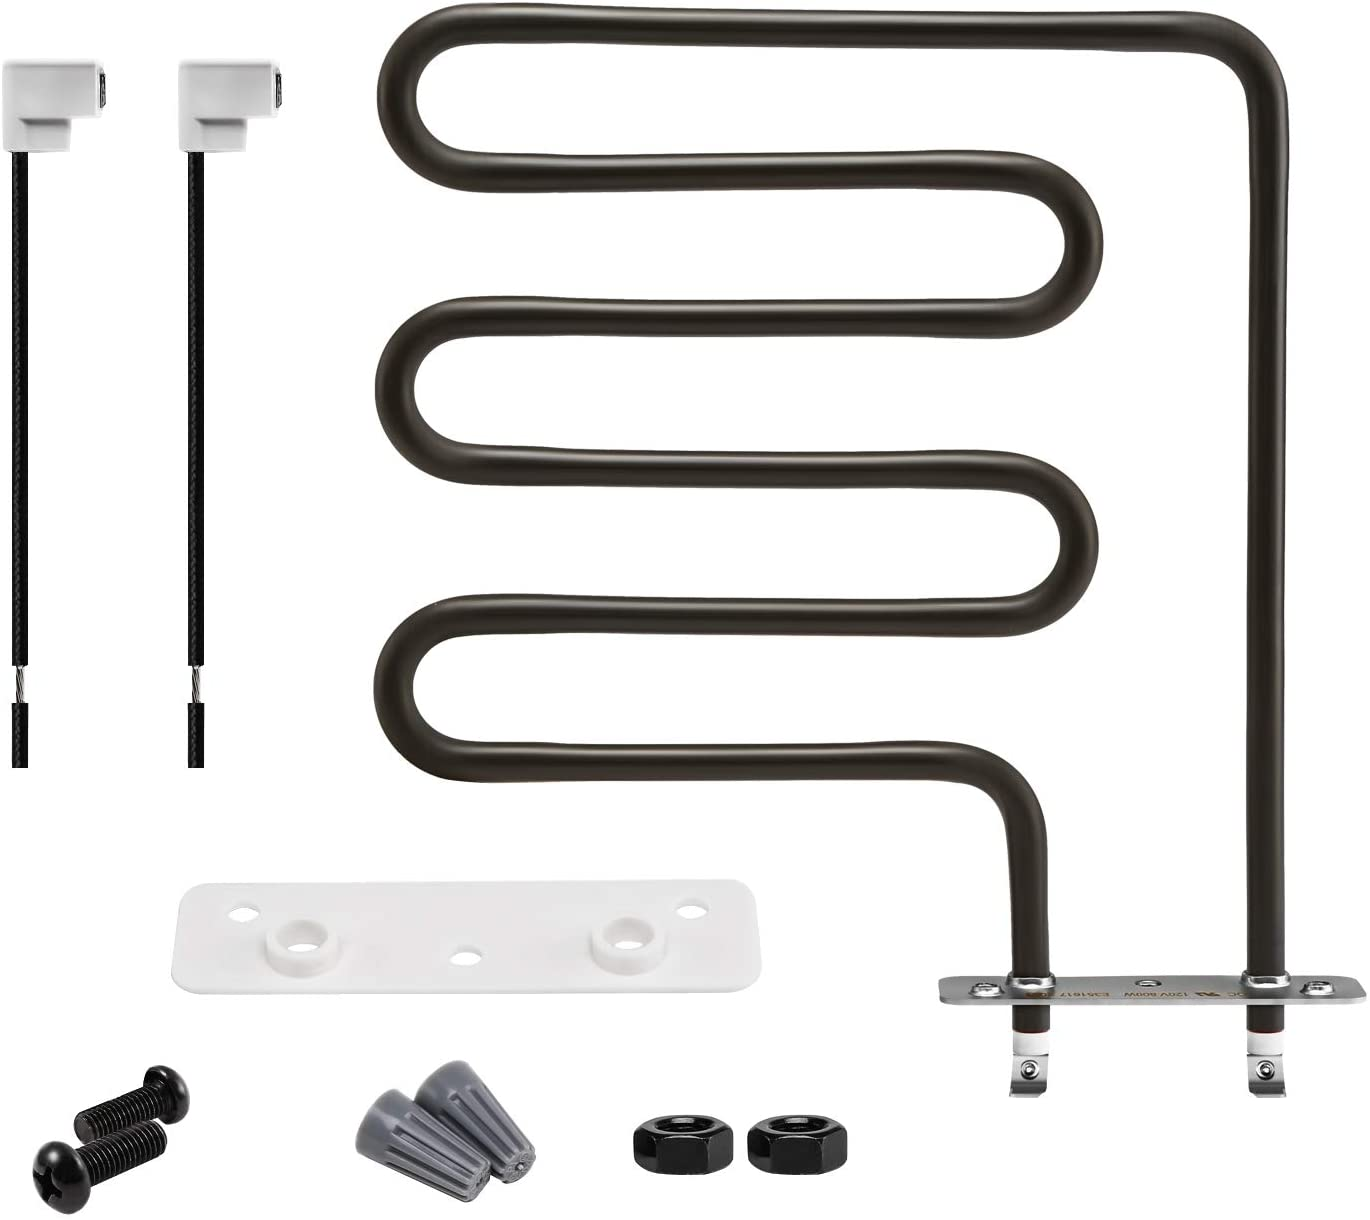 WADEO Electric Smoker and Grill Heating Element Replacement Part for Masterbuilt Heating Element 30